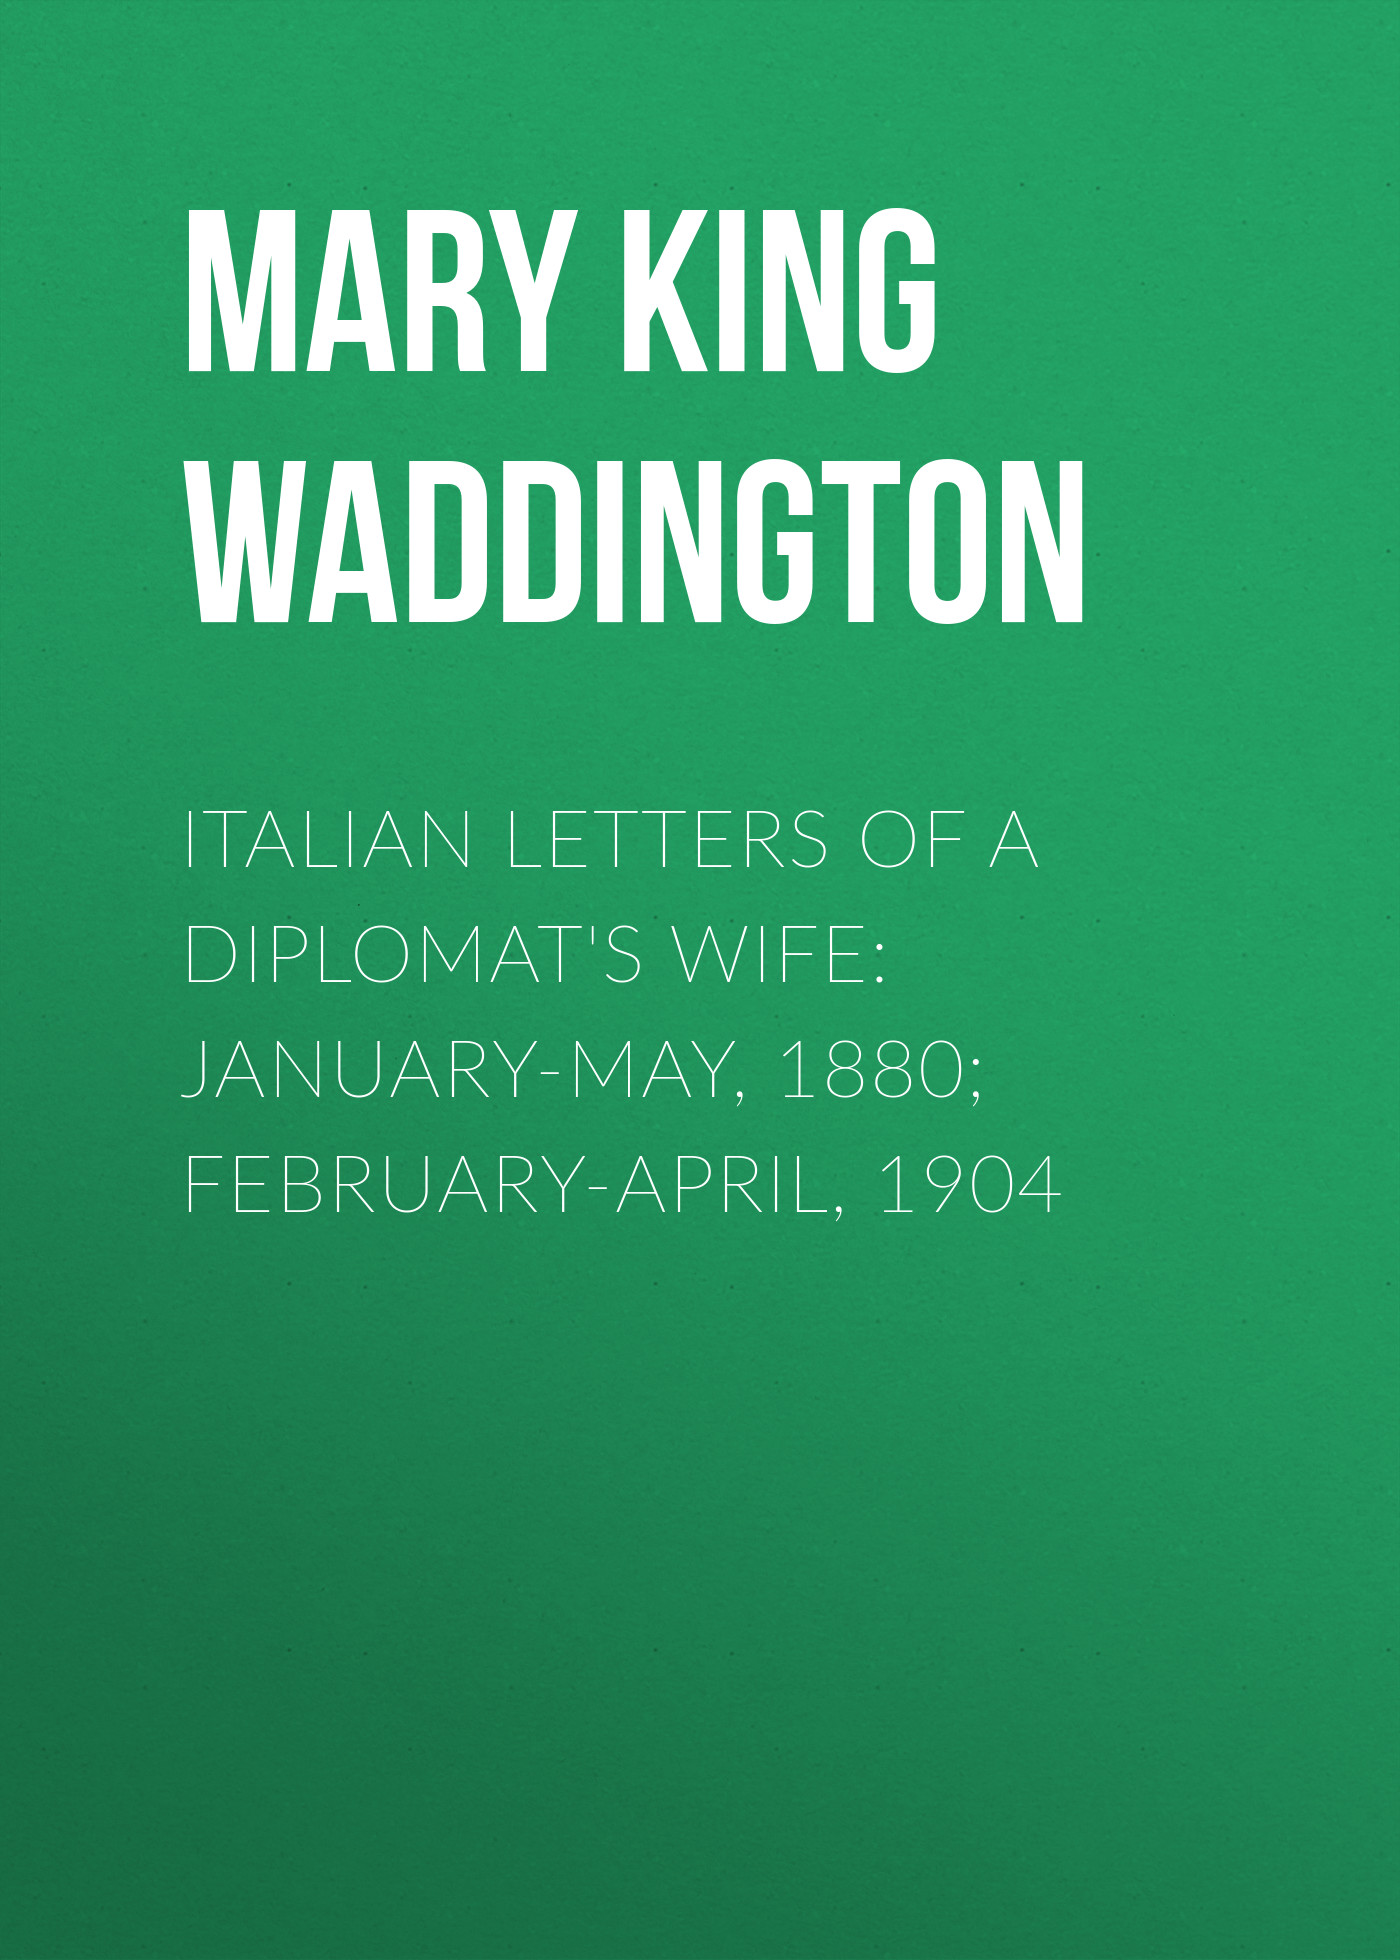 Mary King Waddington Italian Letters of a Diplomat's Wife: January-May, 1880; February-April, 1904 цена 2017